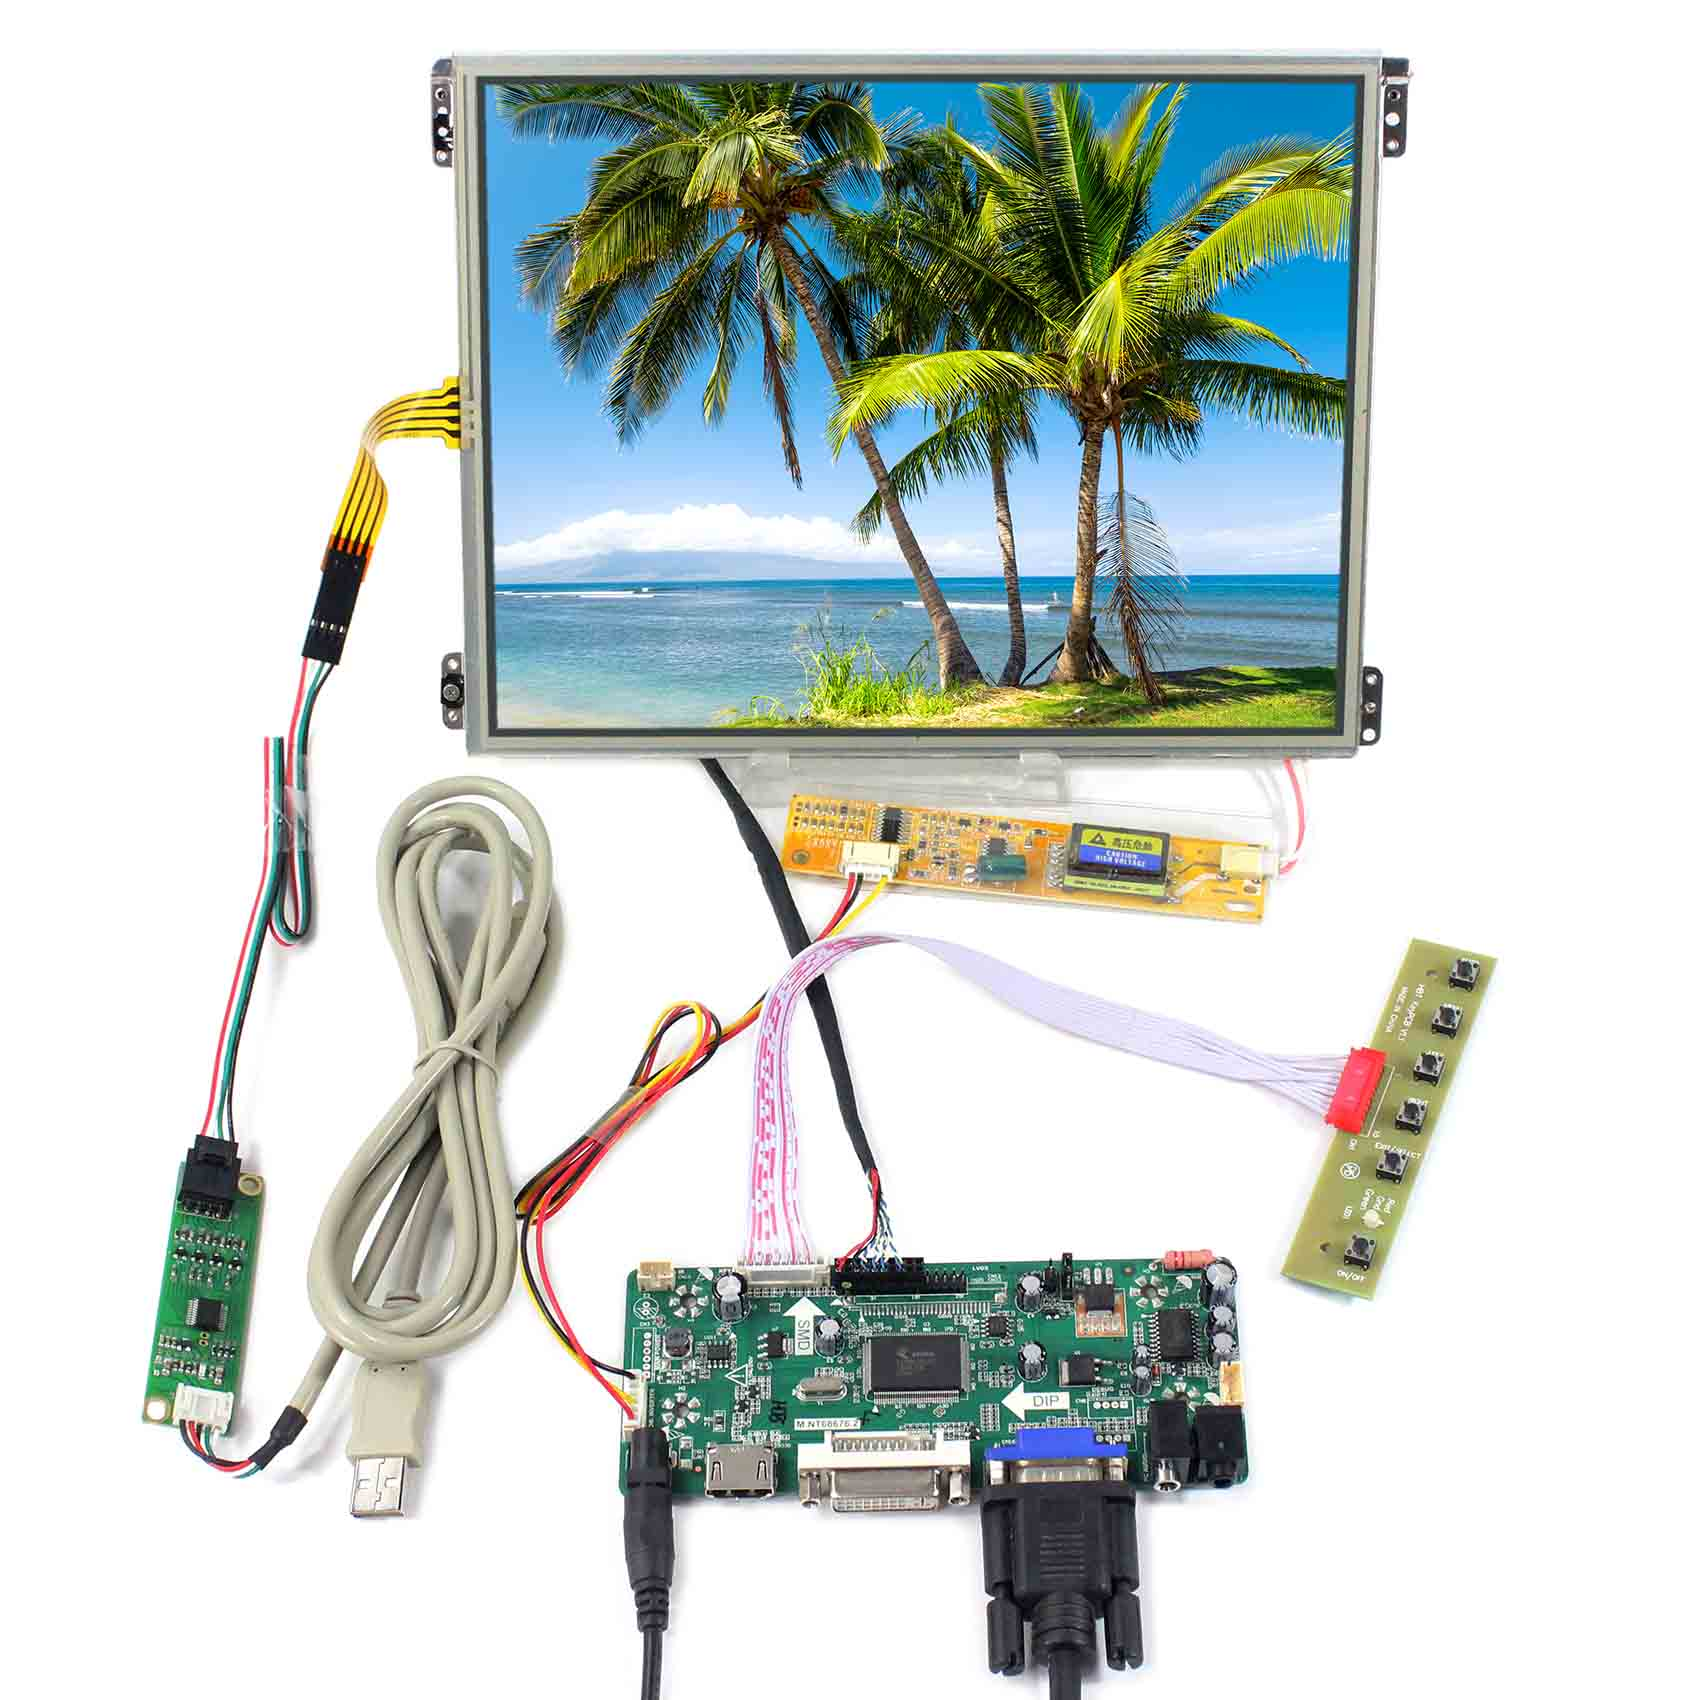 HDMI VGA DVI LCD Controller Board M.NT68676 work for 10.4inch 1024X768 IPS LCD Screen HT10X21-311 and Touch Panel VS104TP-A1HDMI VGA DVI LCD Controller Board M.NT68676 work for 10.4inch 1024X768 IPS LCD Screen HT10X21-311 and Touch Panel VS104TP-A1